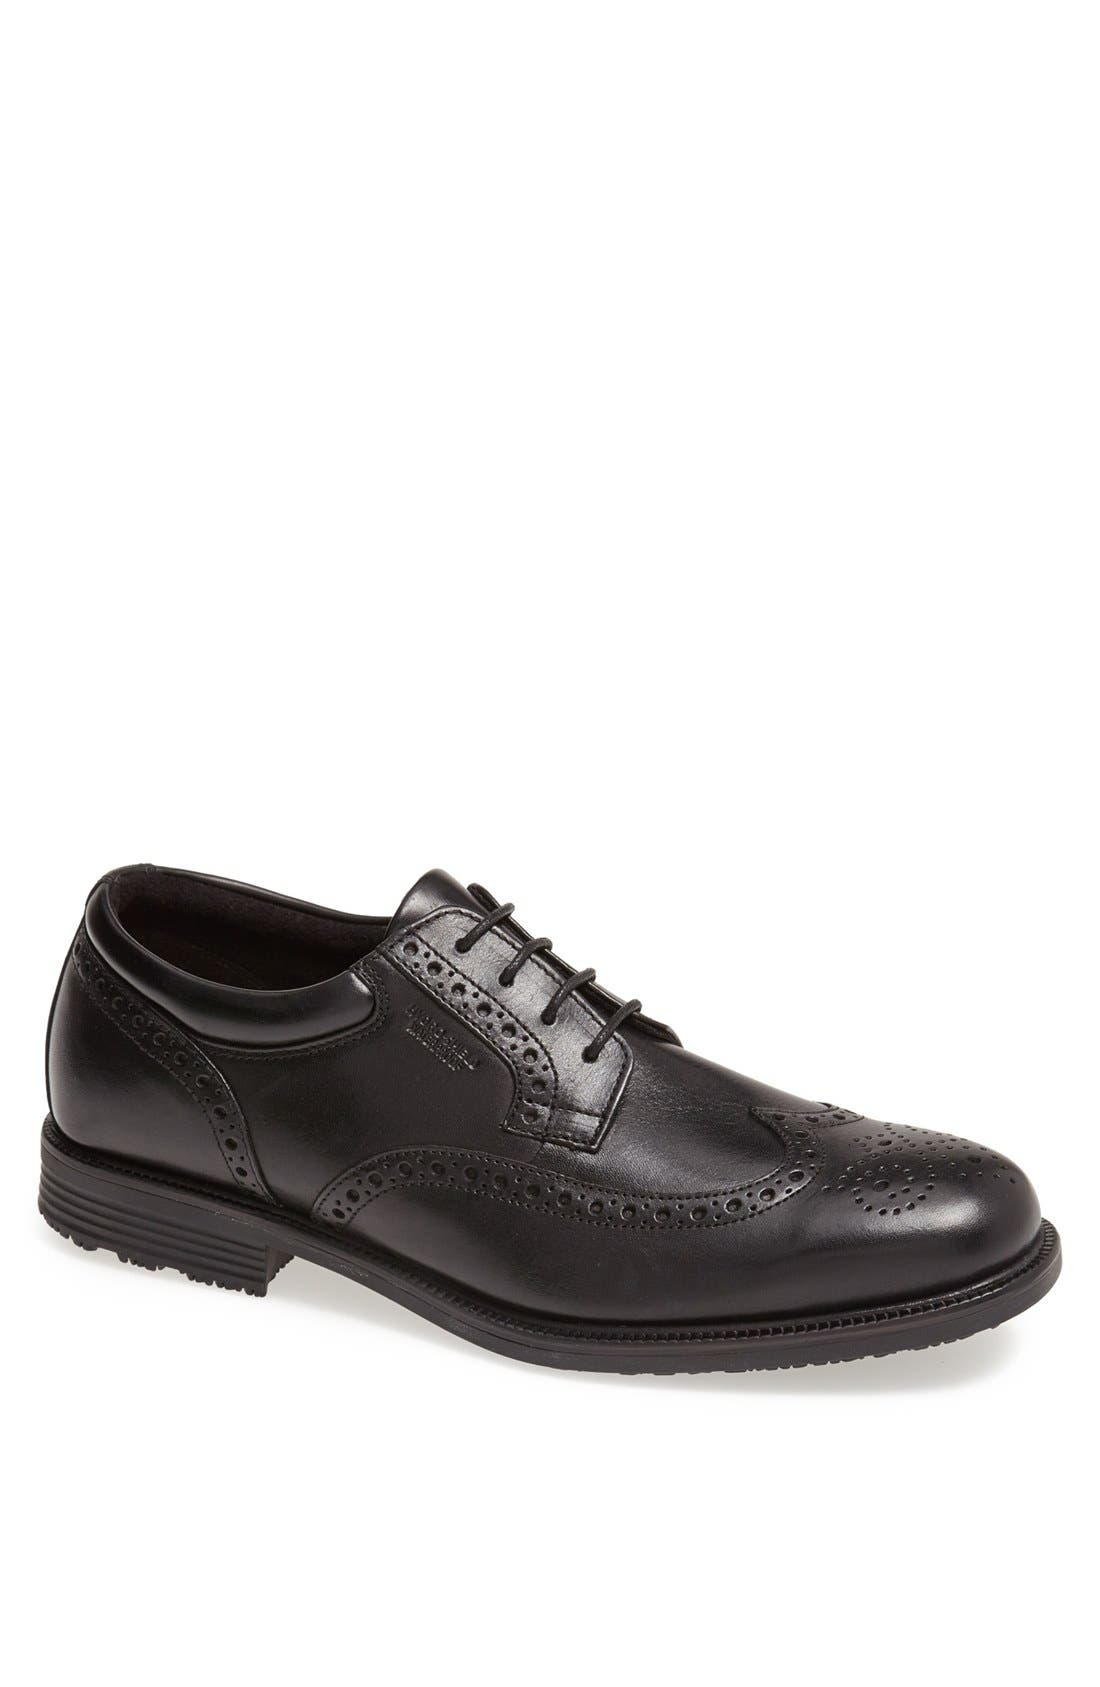 Main Image - Rockport 'Essential Details' Waterproof Wingtip